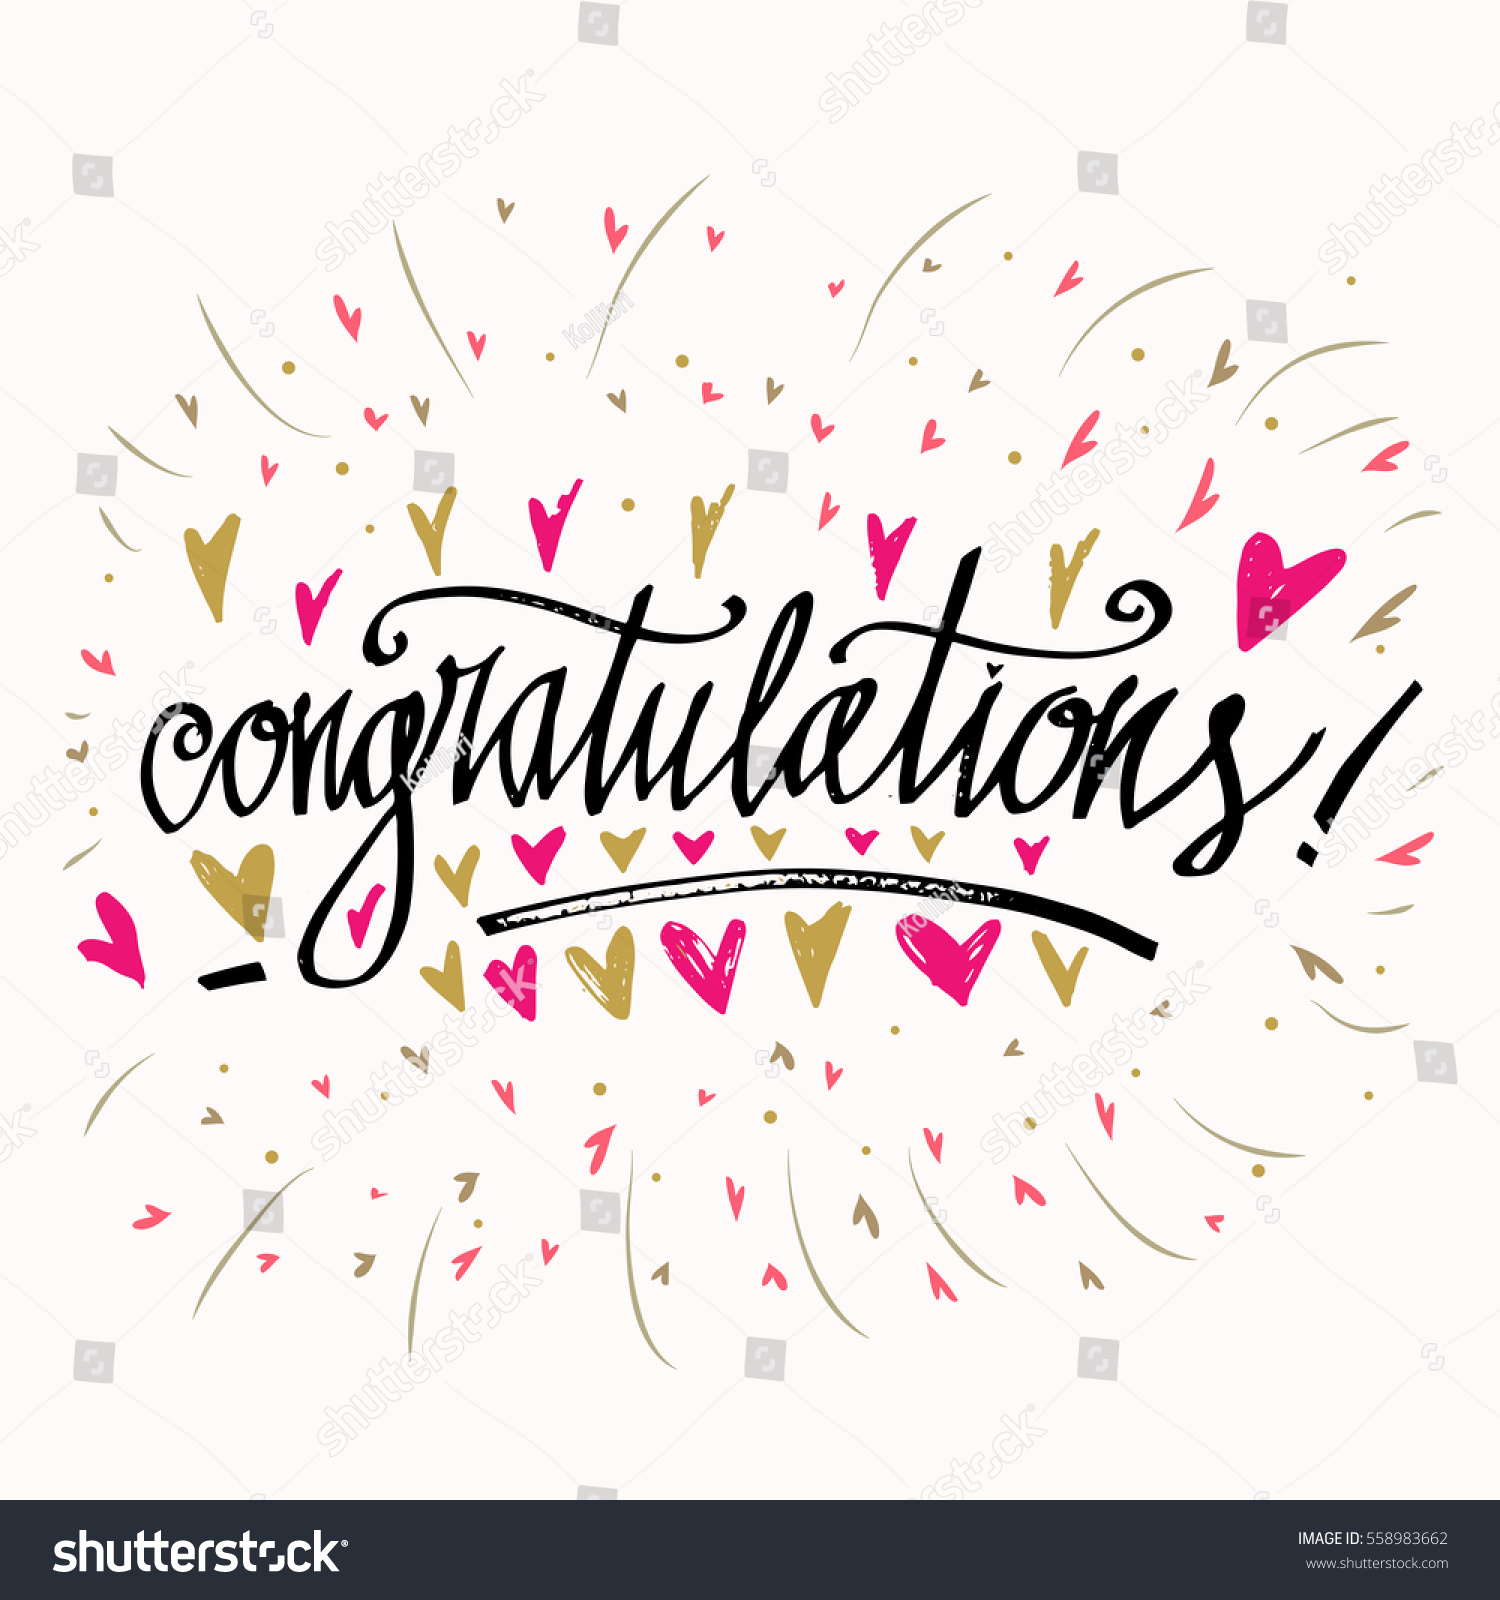 Congratulations Calligraphy Card Heart Background Hand